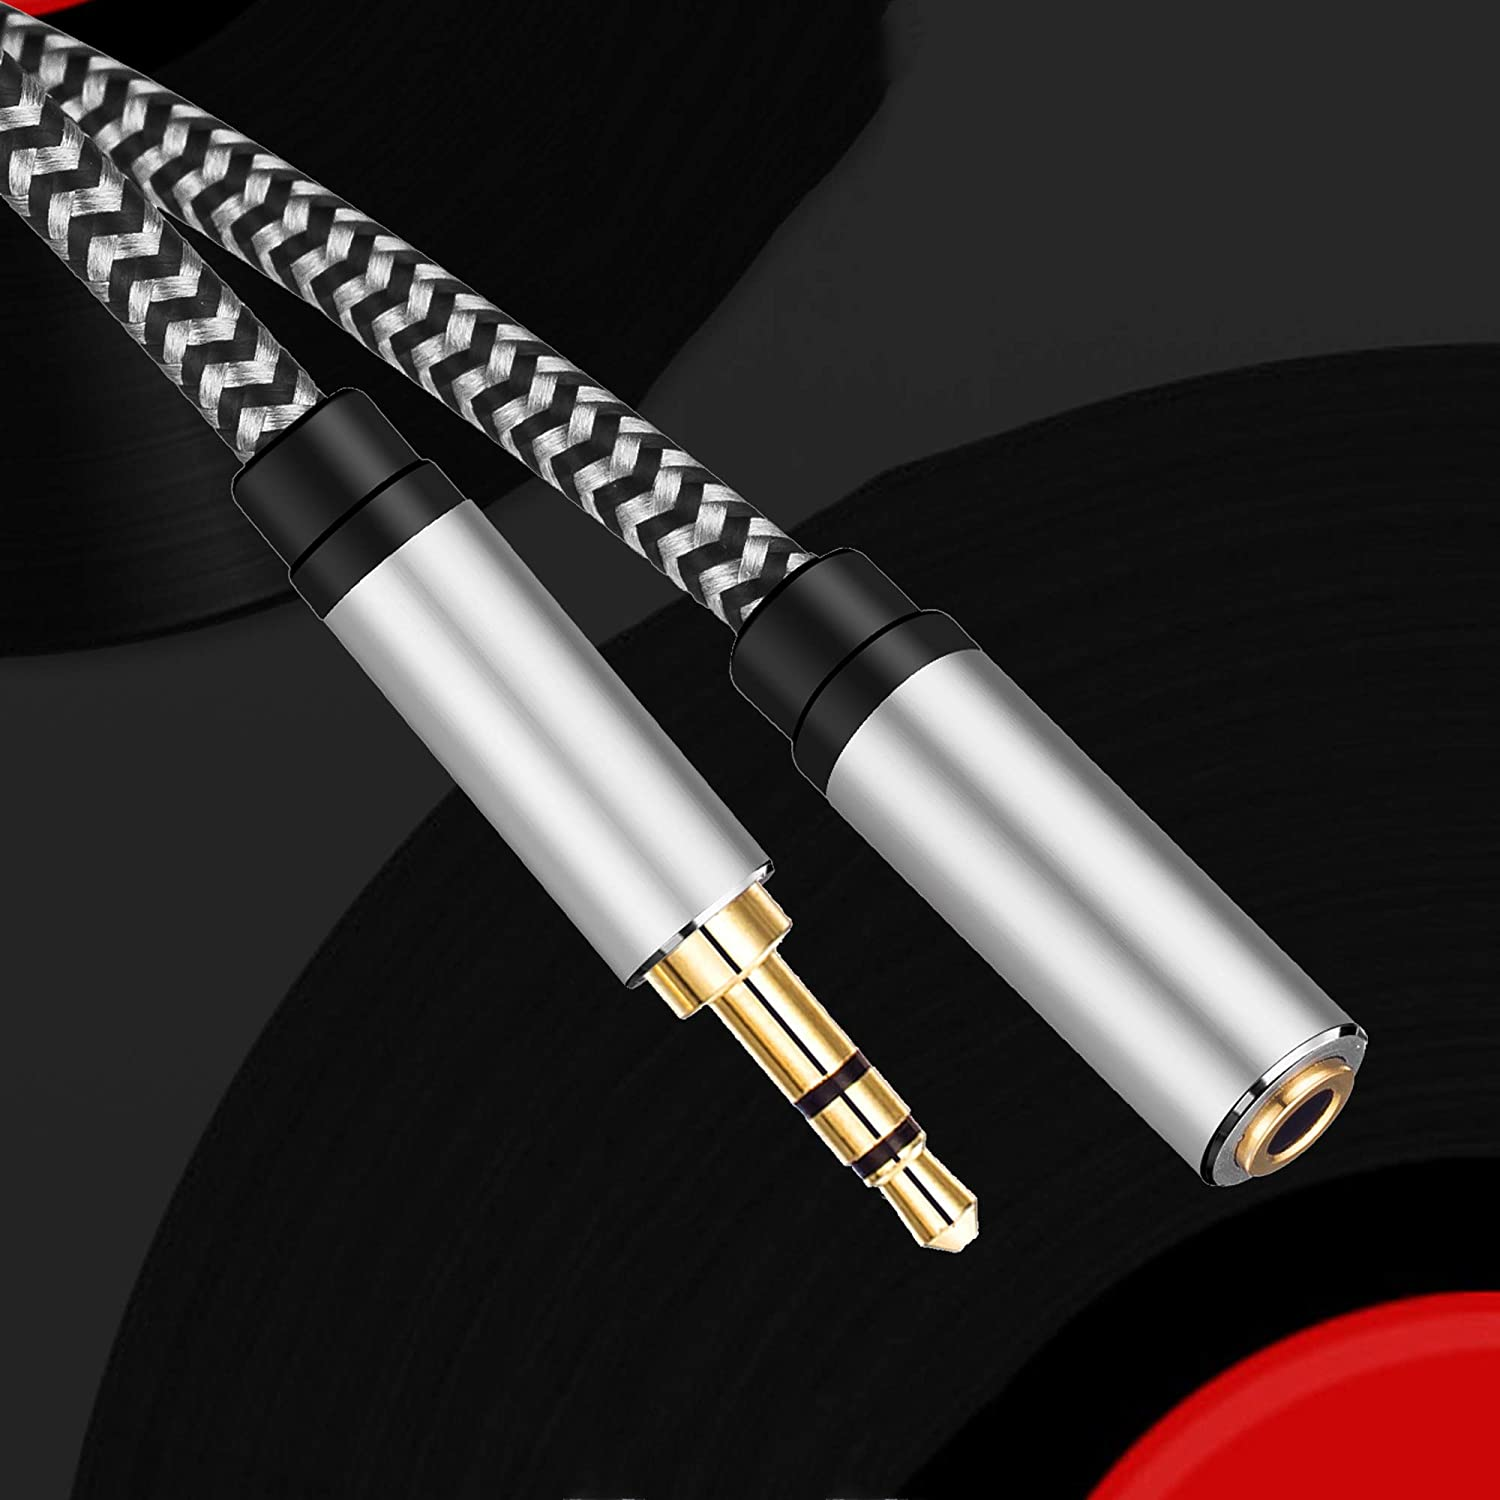 PC Morelecs Aux Extension Cord 12ft,3.5mm 1//8 Aux Stereo Audio Cable Male to Female Stereo Audio Extension Adapter Cable Nylon Braided Male to Female AUX Cord Compatible Phones Headphones,Speakers